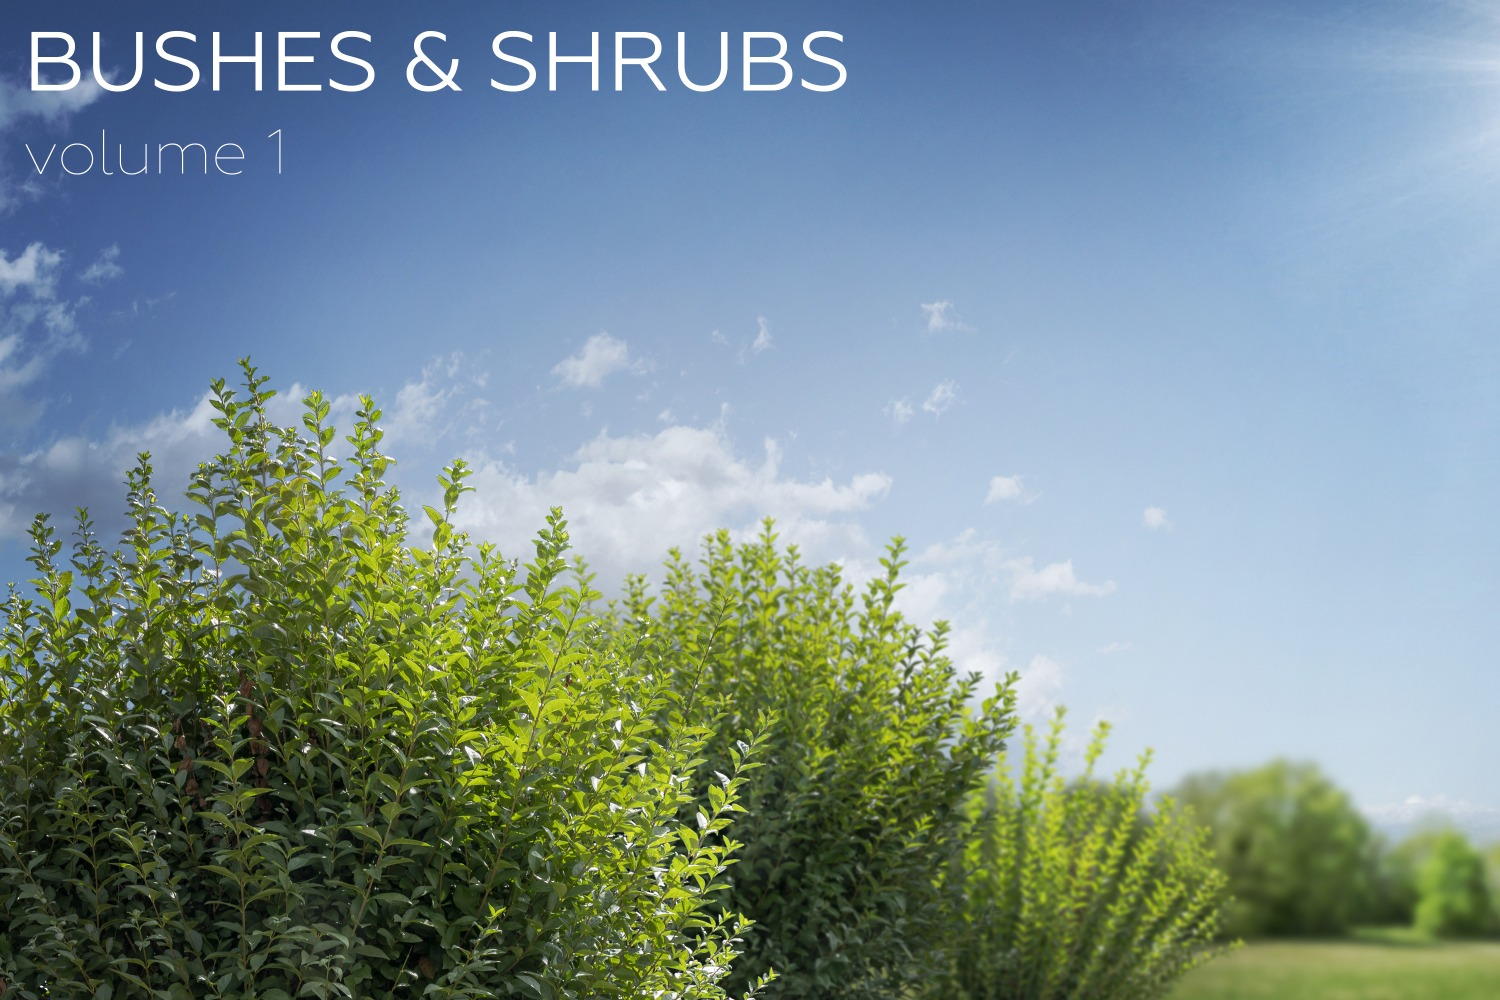 BUSHES & SHRUBS - Volume 1